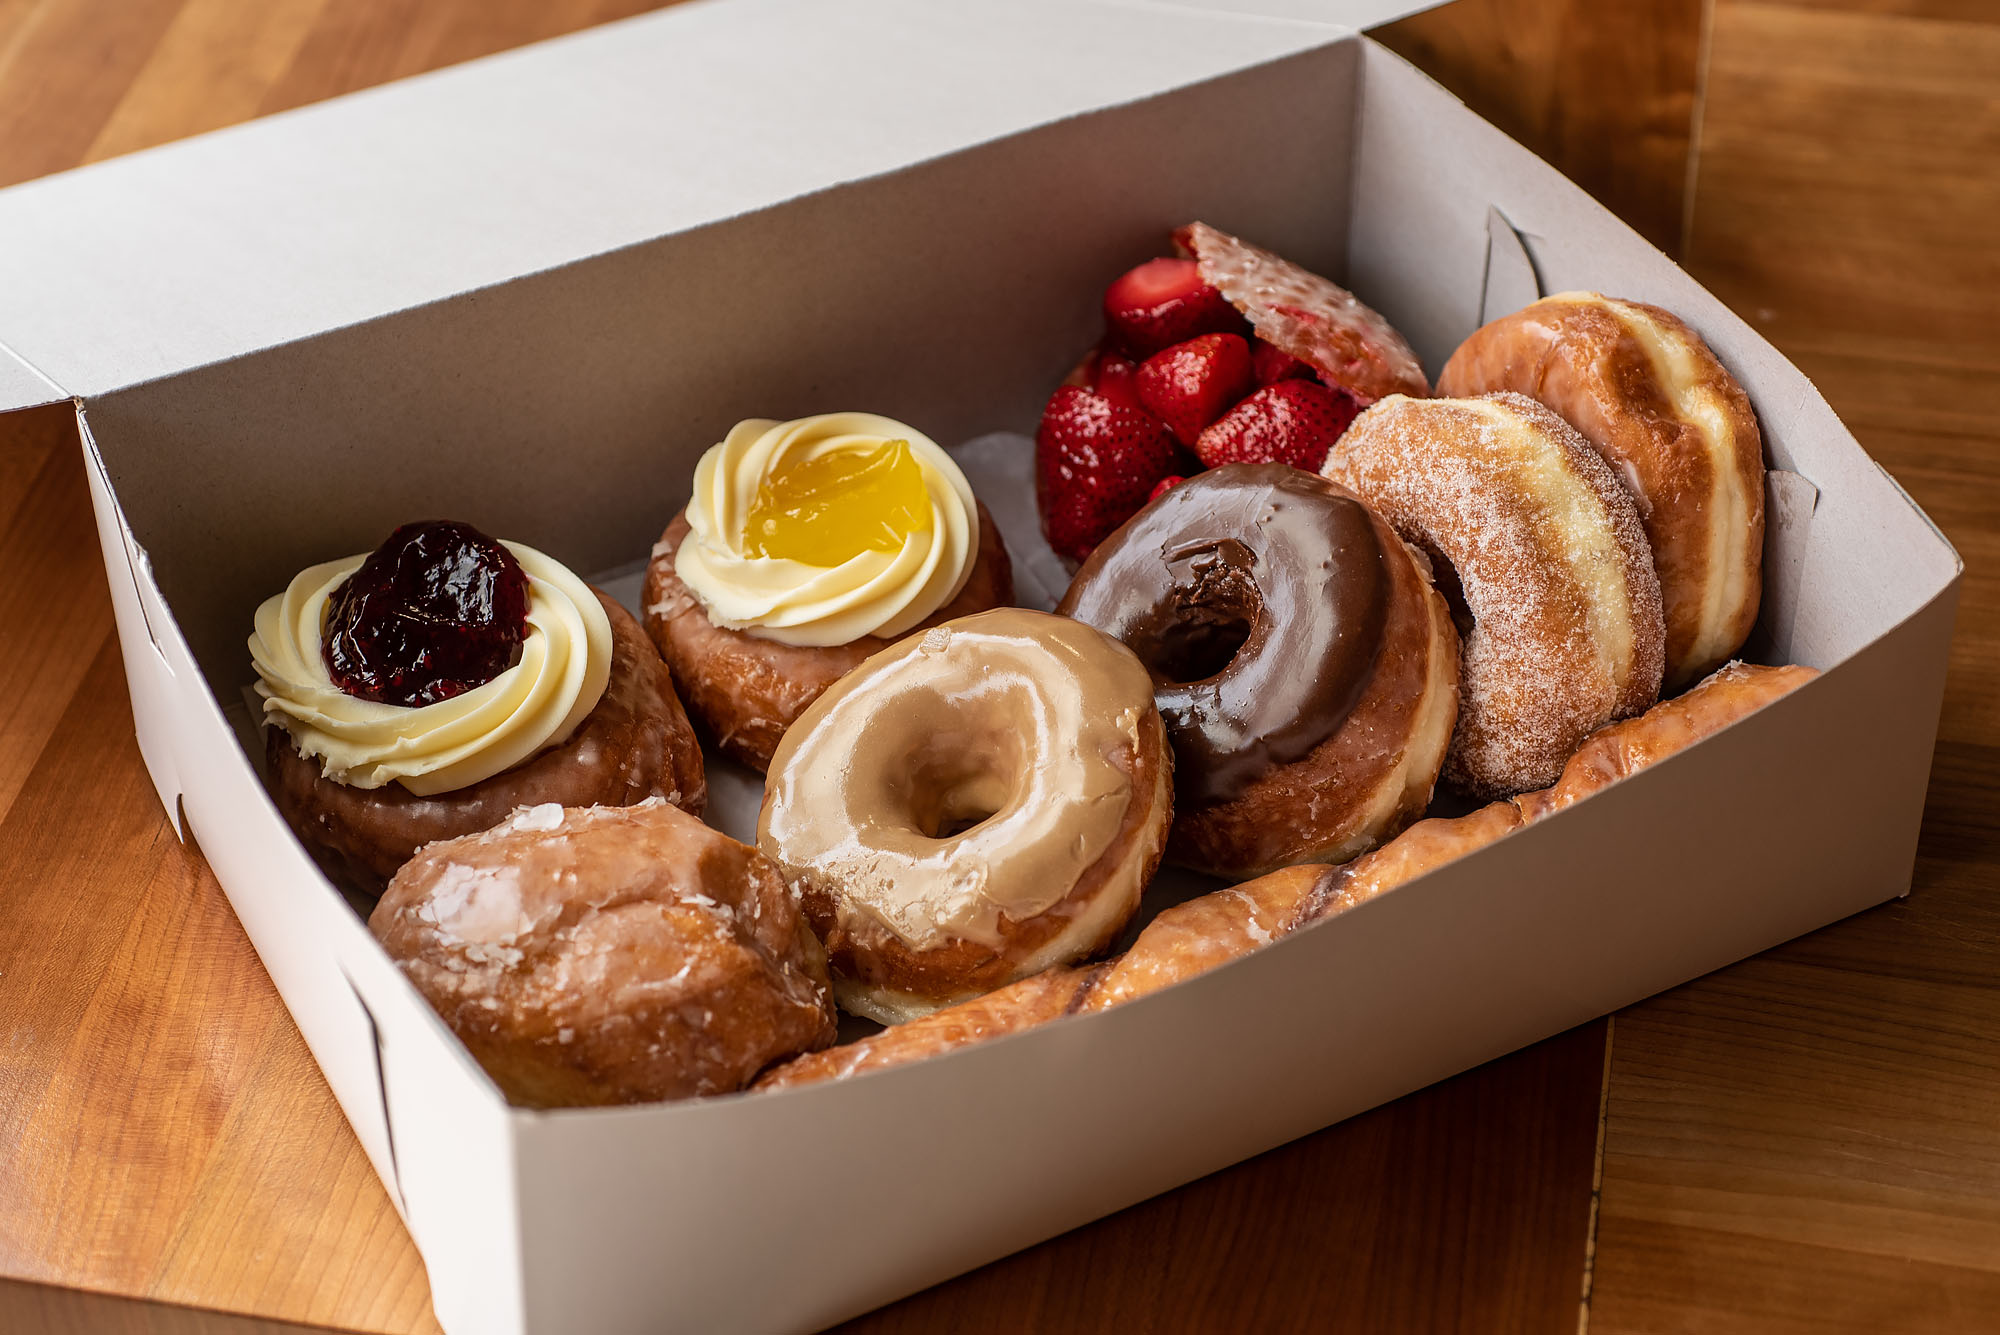 A box of various doughnuts shown from above at an angle, in a white box.